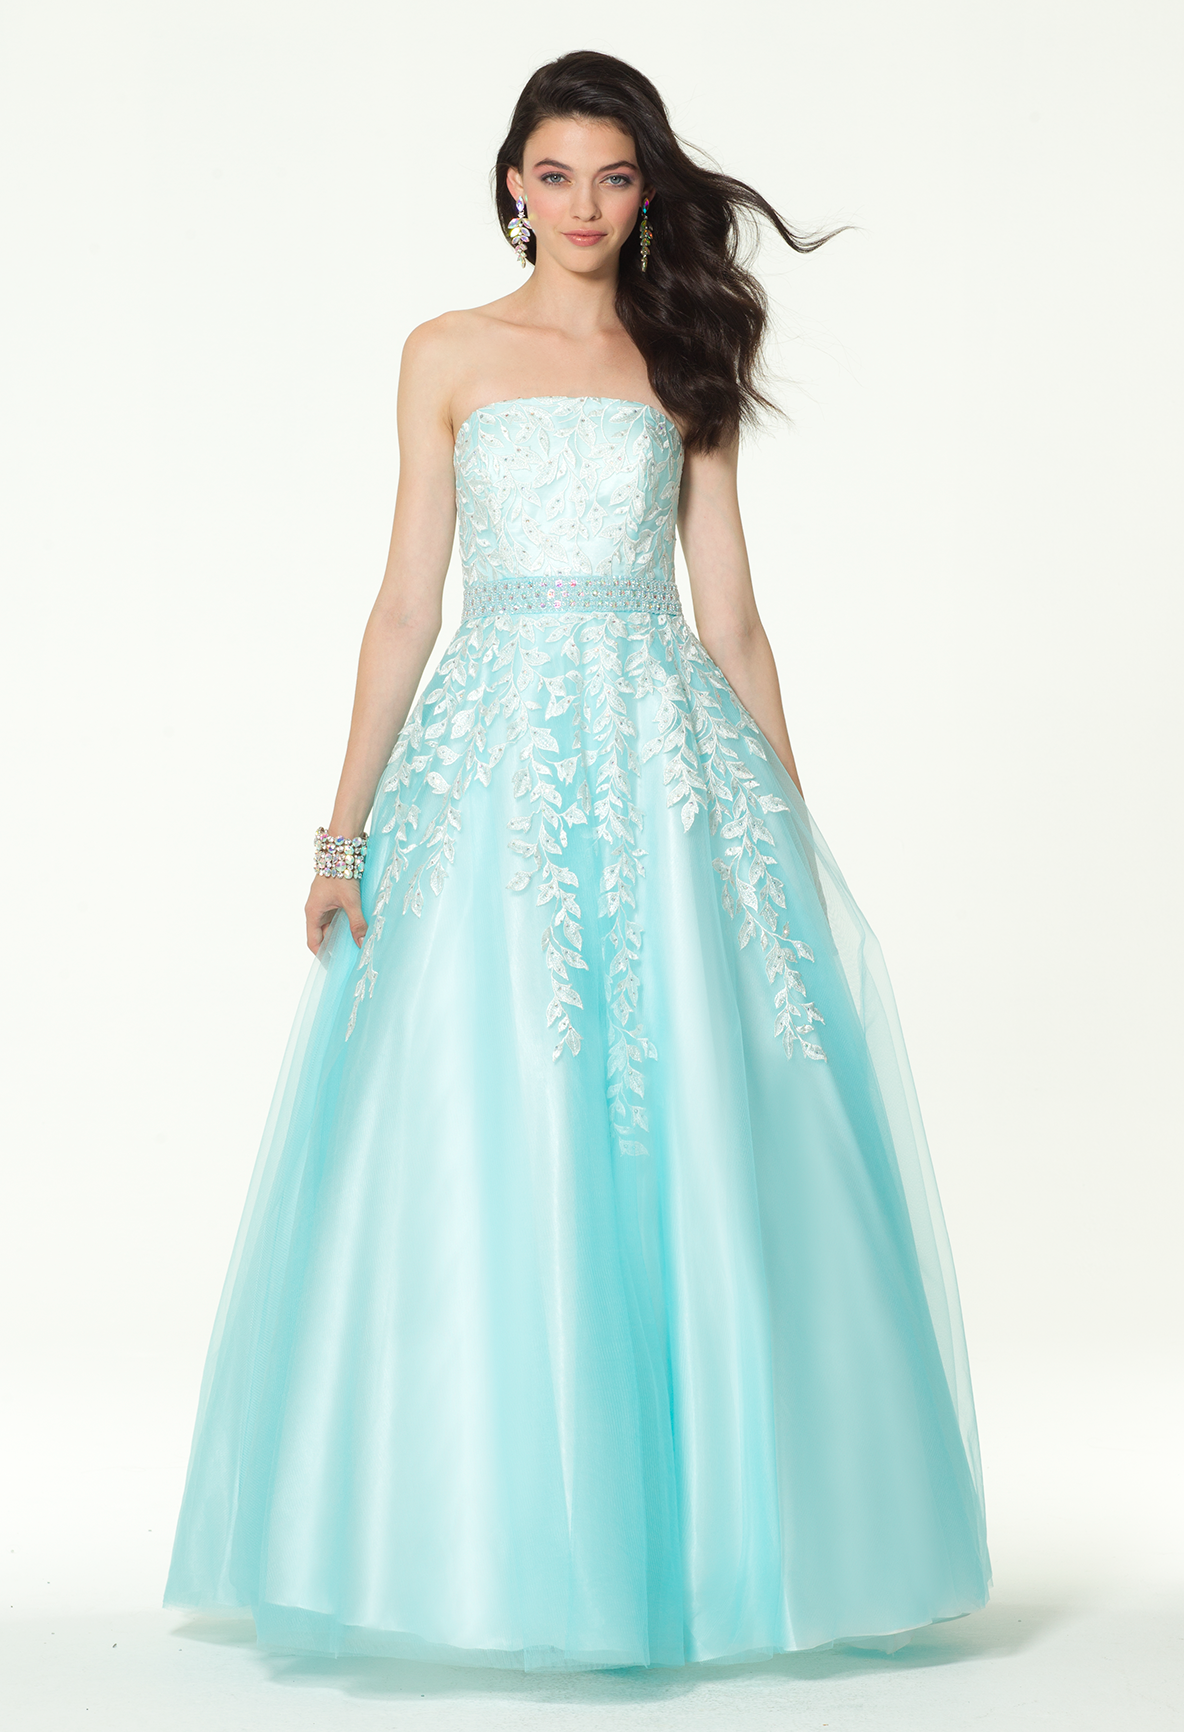 Create your own fairytale with this ethereal evening gown! The ...